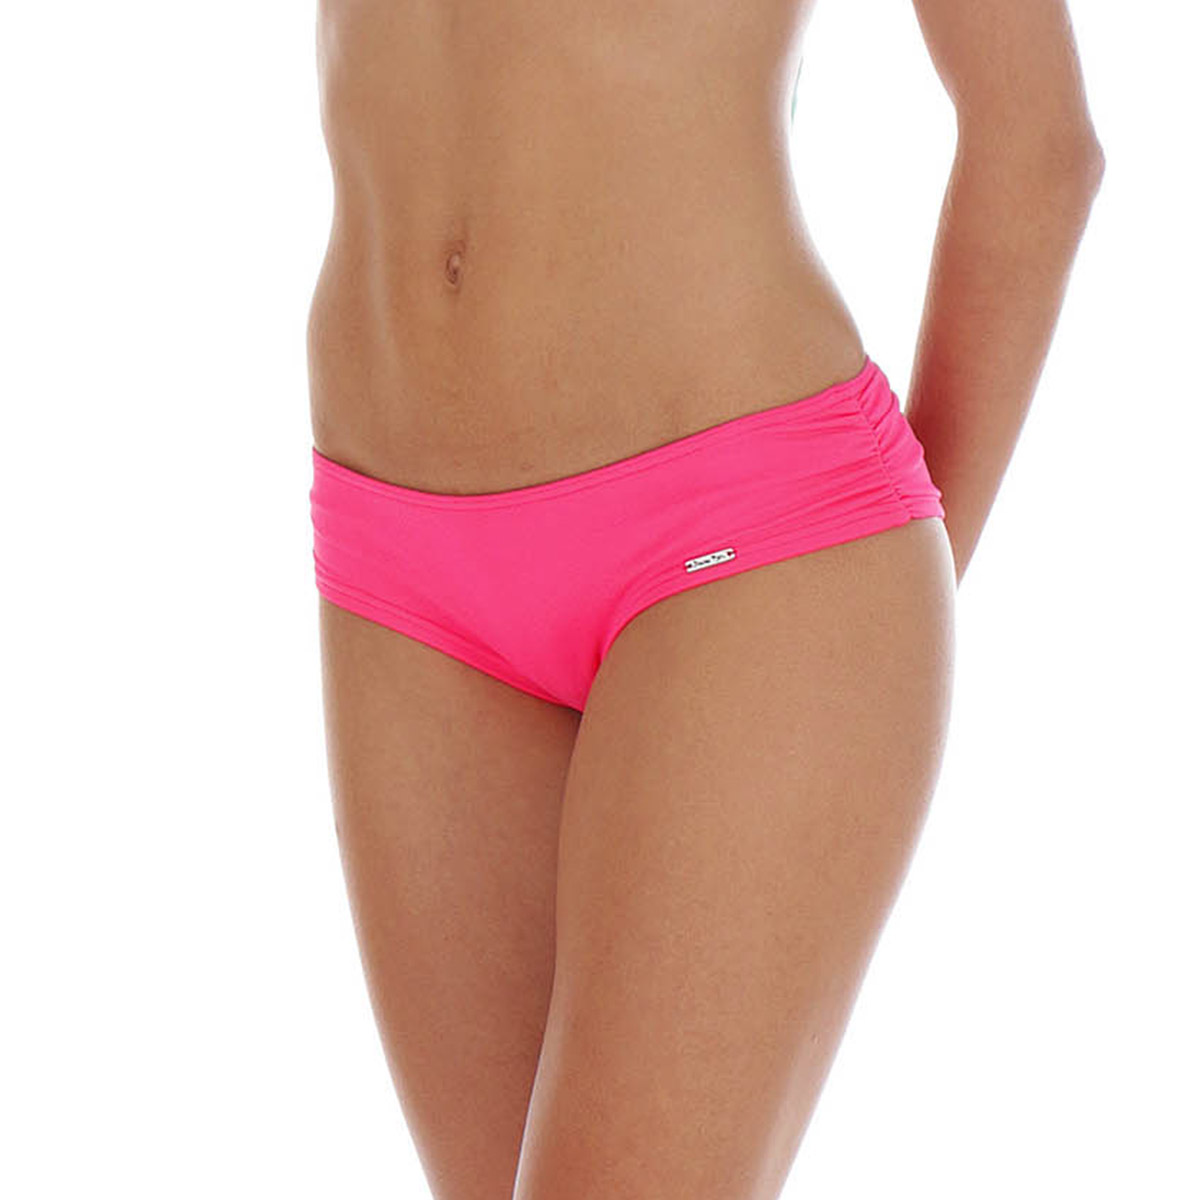 Teens - Maillot de bain shorty rose Mermaid (Bas)